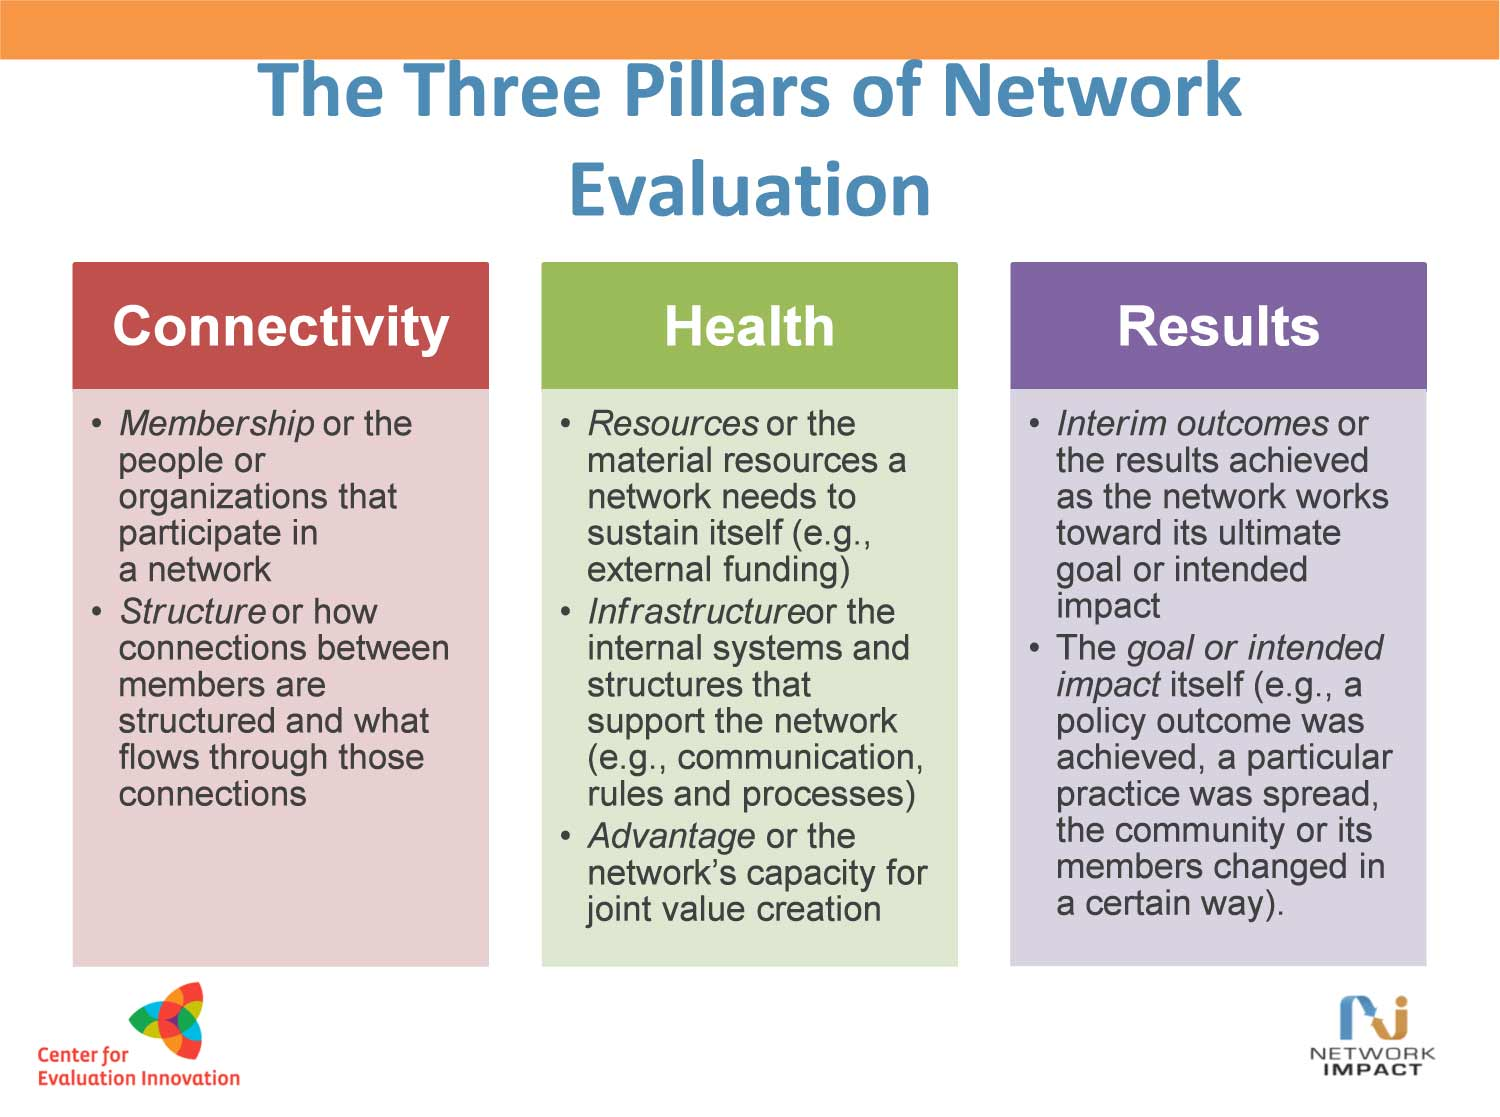 3_pillars_of_network_eval.jpg